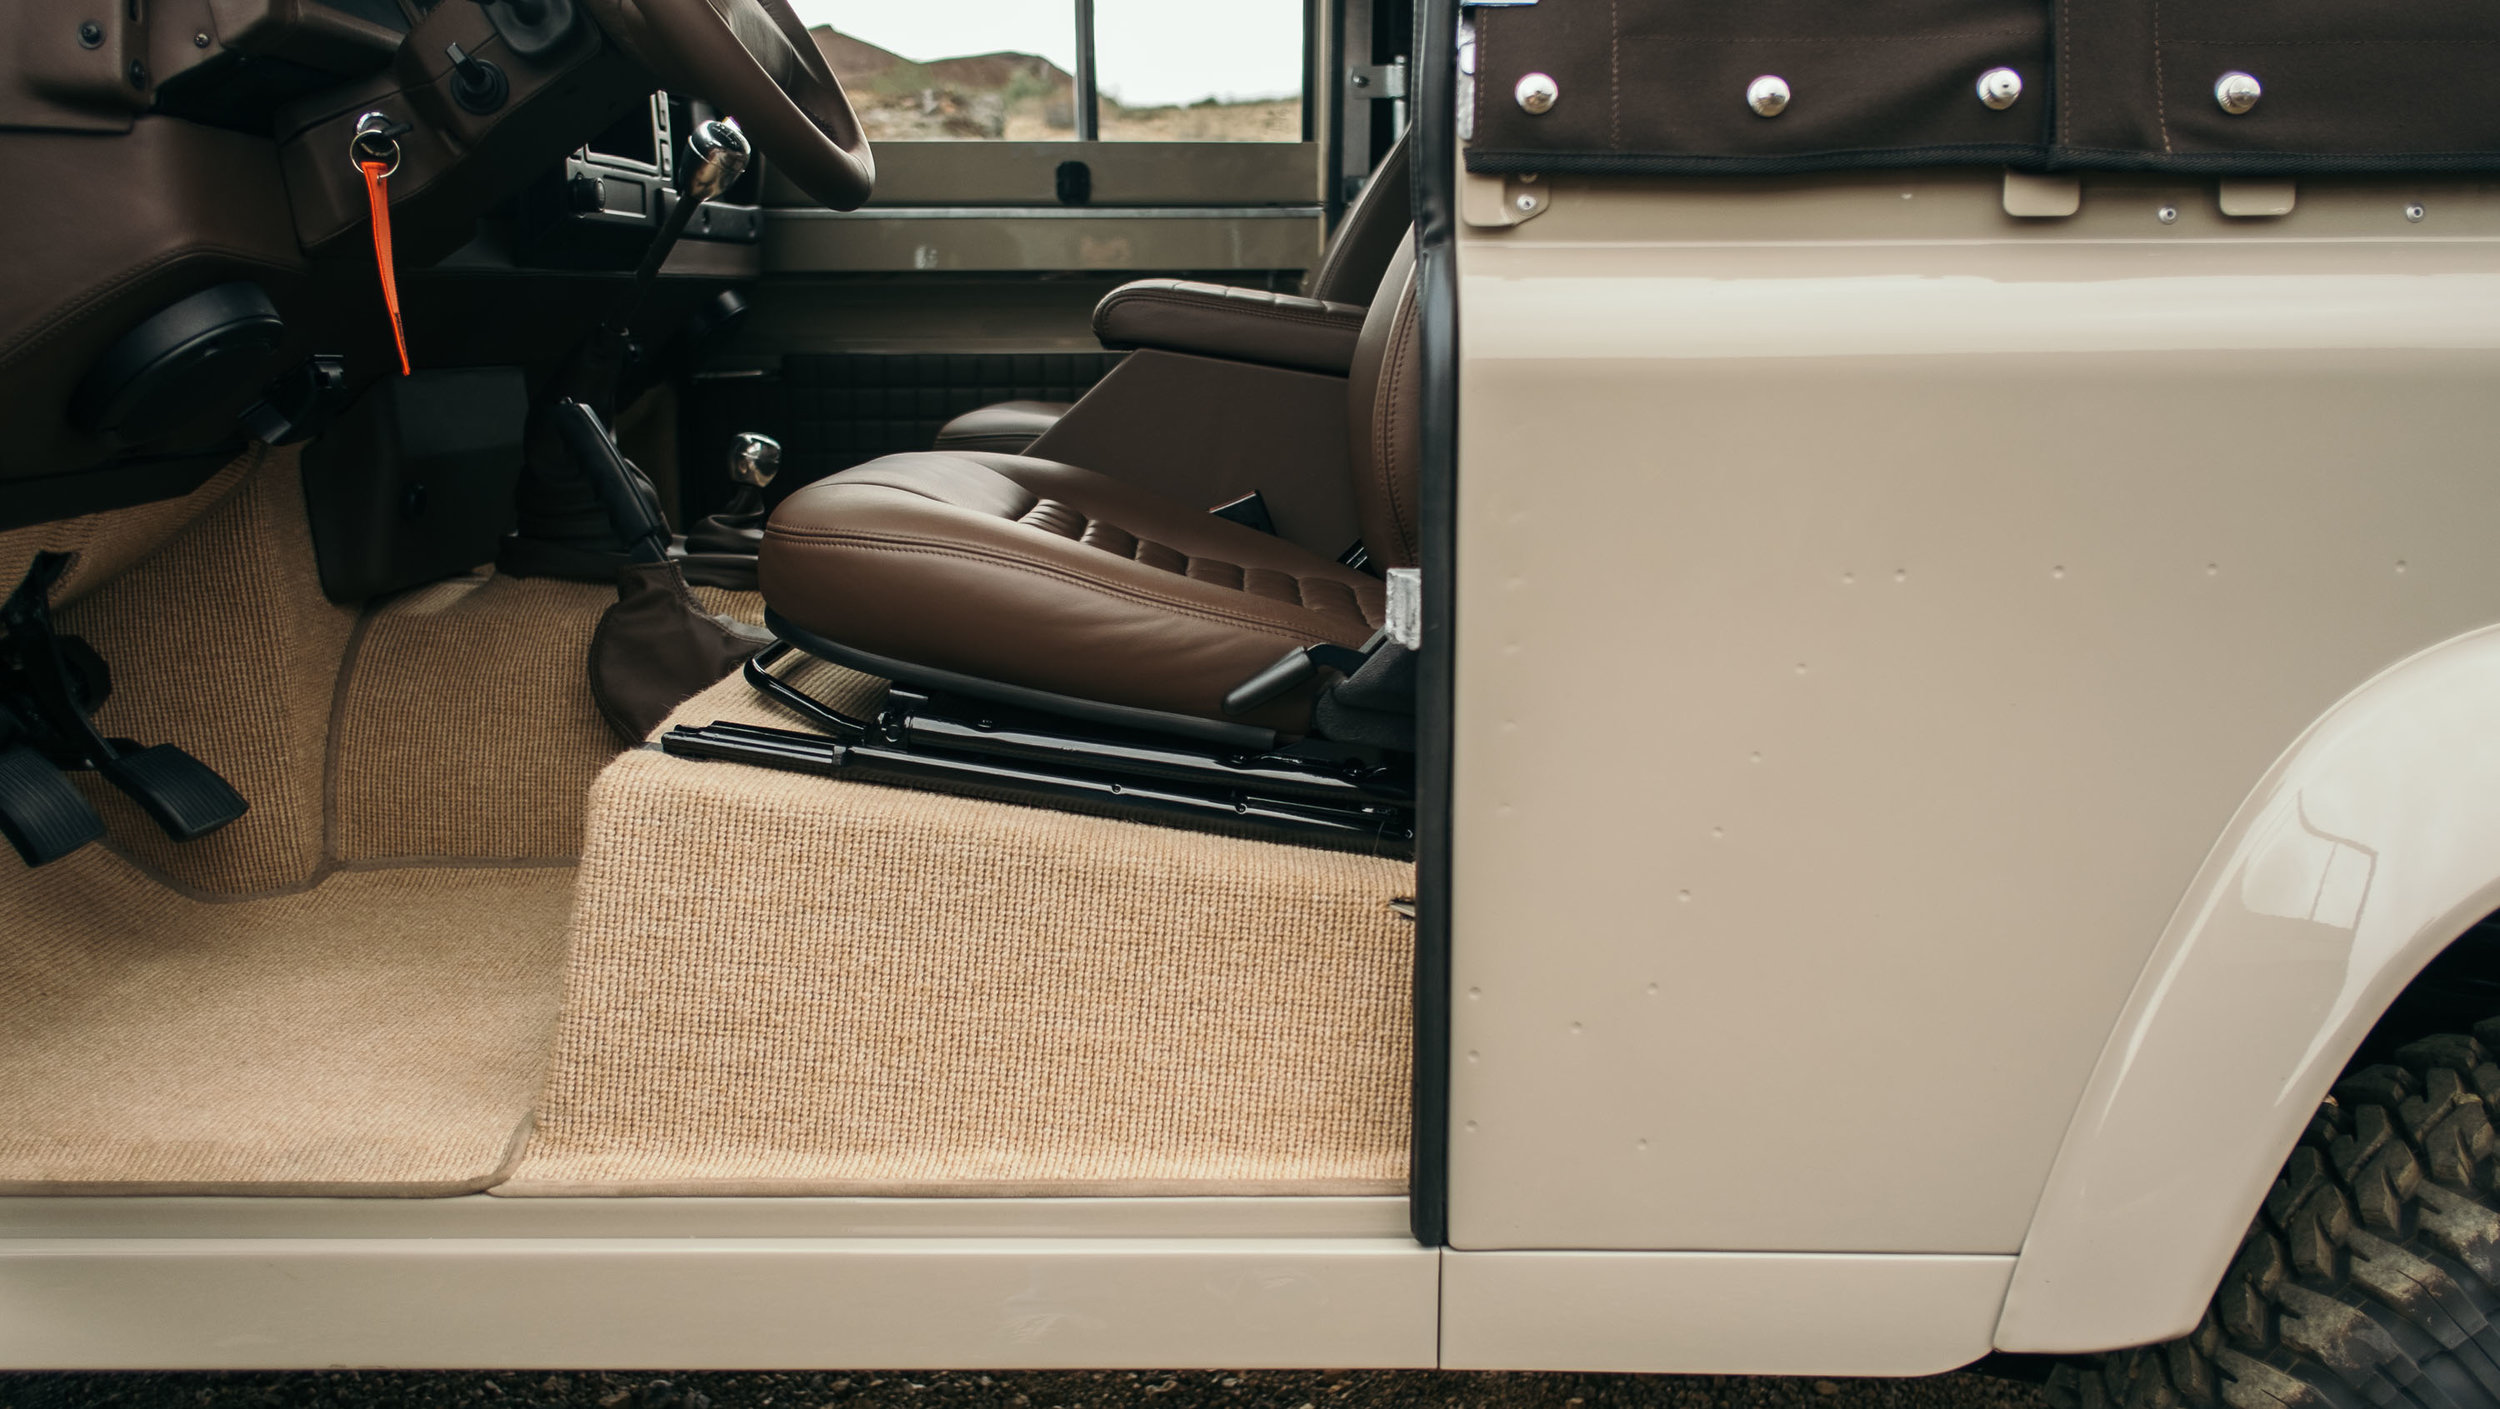 coolnvintage Land Rover Defender (18 of 81).jpg